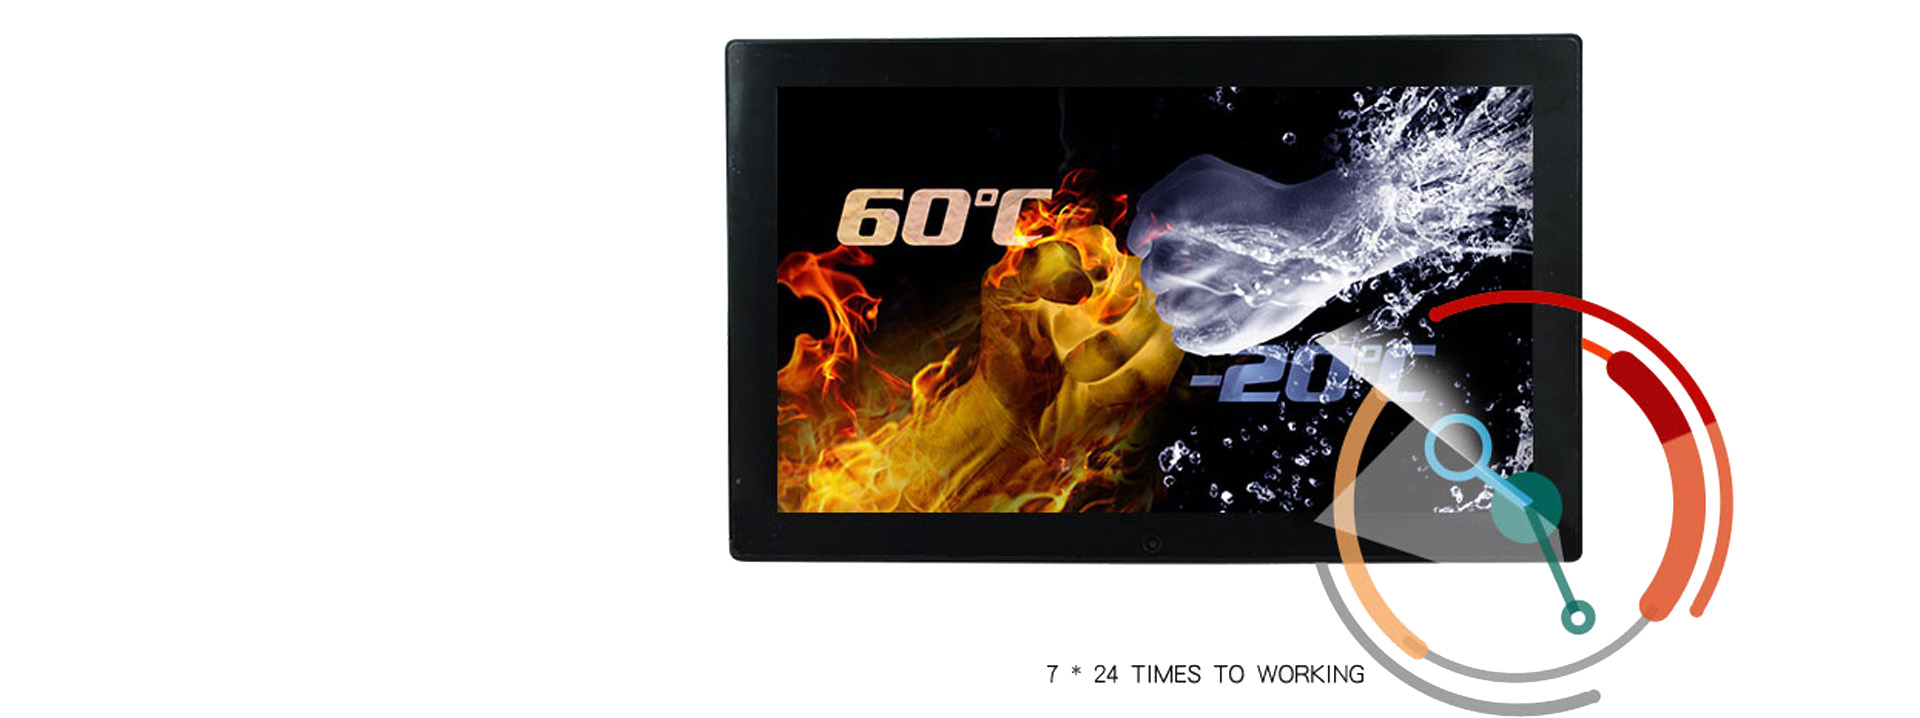 Hengstar -High-quality Ultra Wide Flat Tft Lcd Screen Desktop Pc Monitor Hsvm Series-8